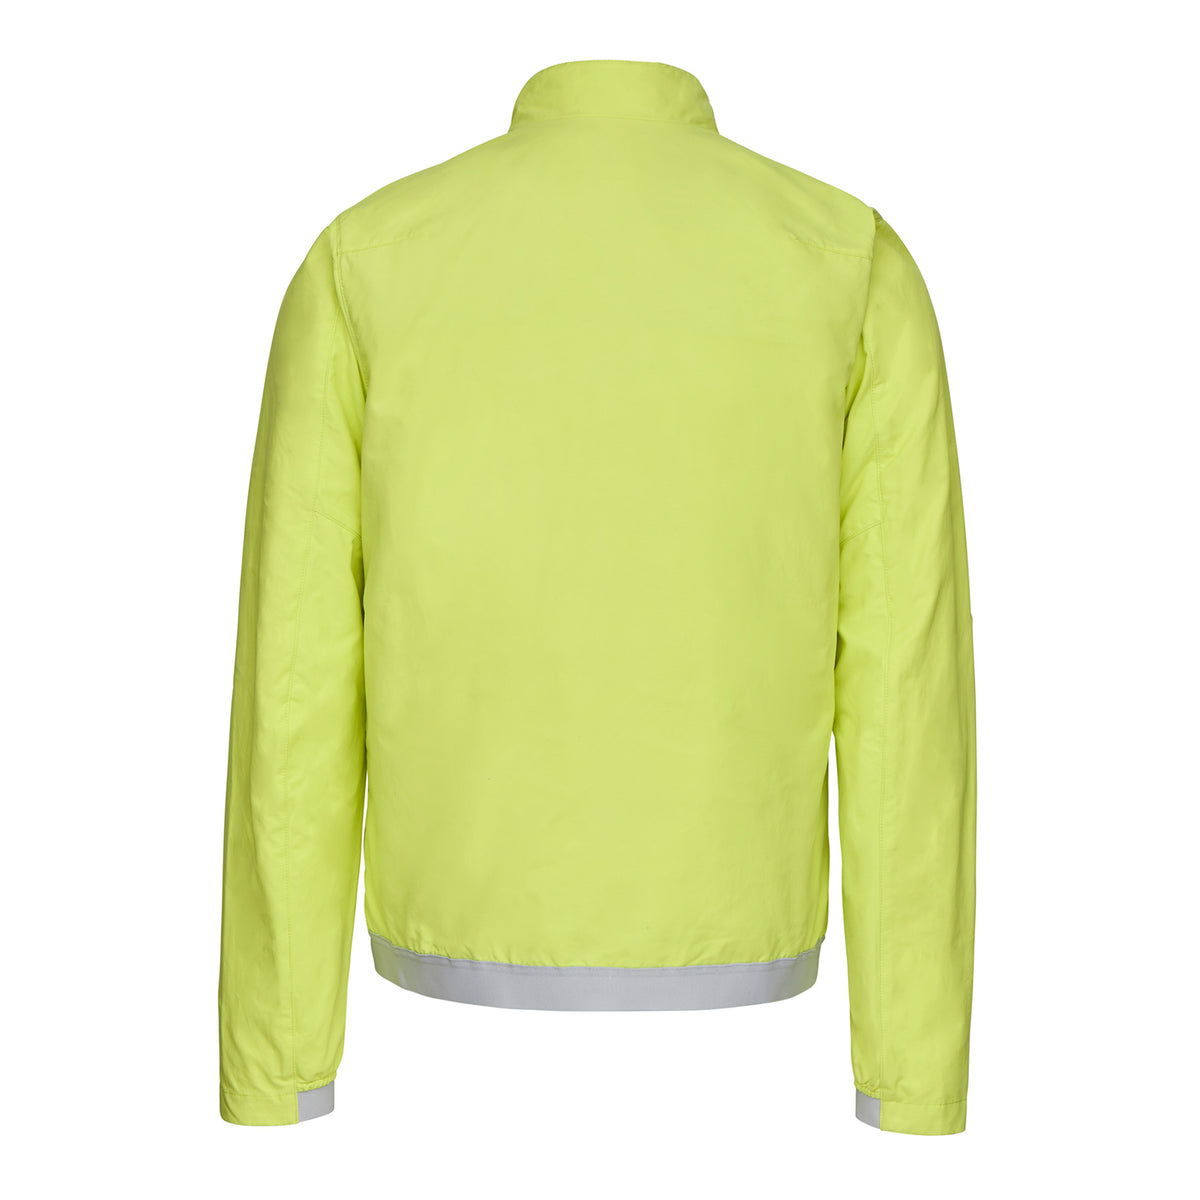 Breeze Jacket - background::white,variant::Limeade